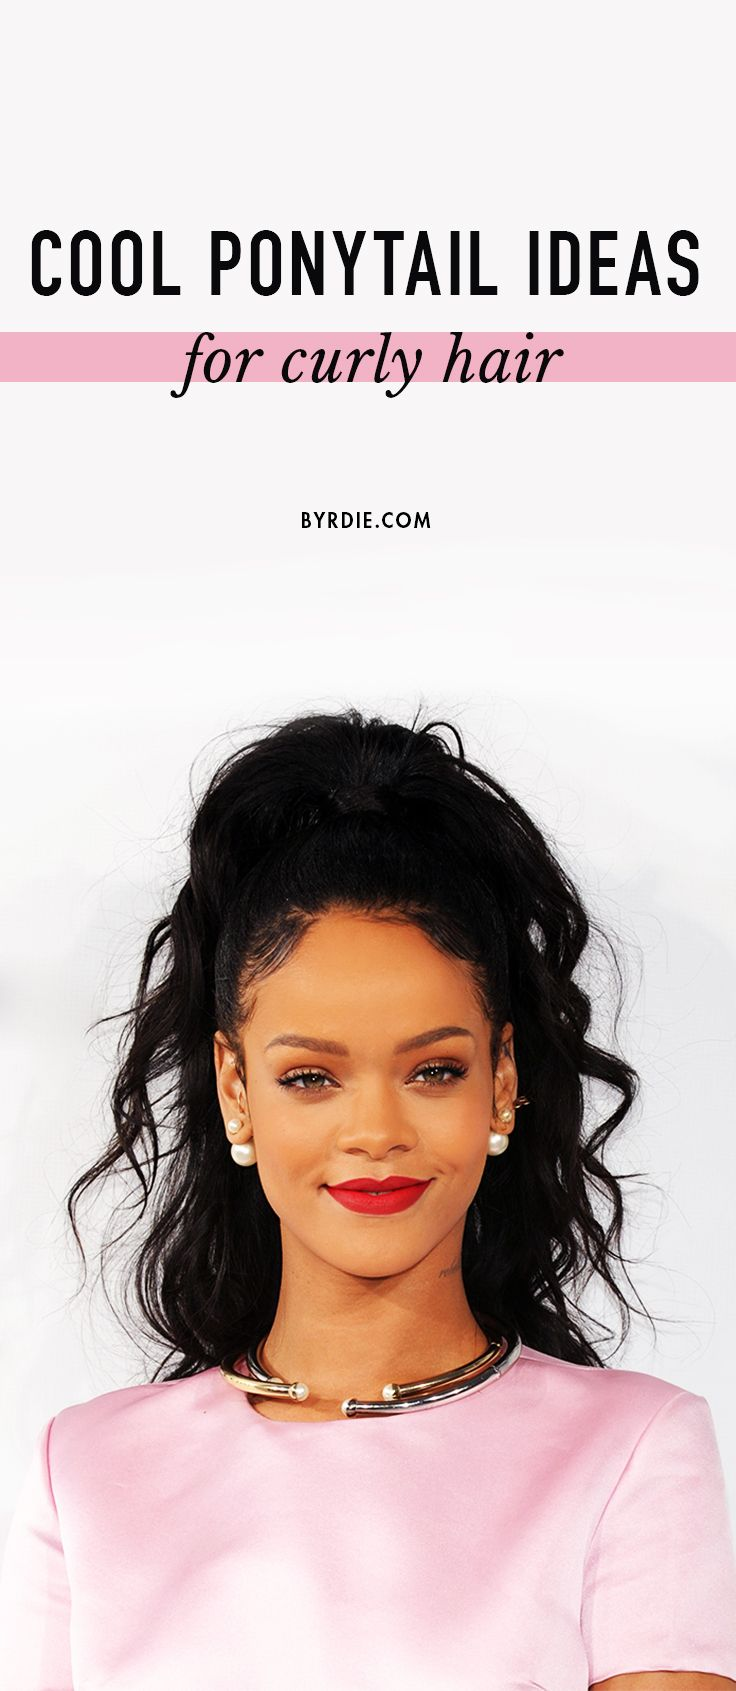 7 ways to update a ponytail for curly-haired girls.